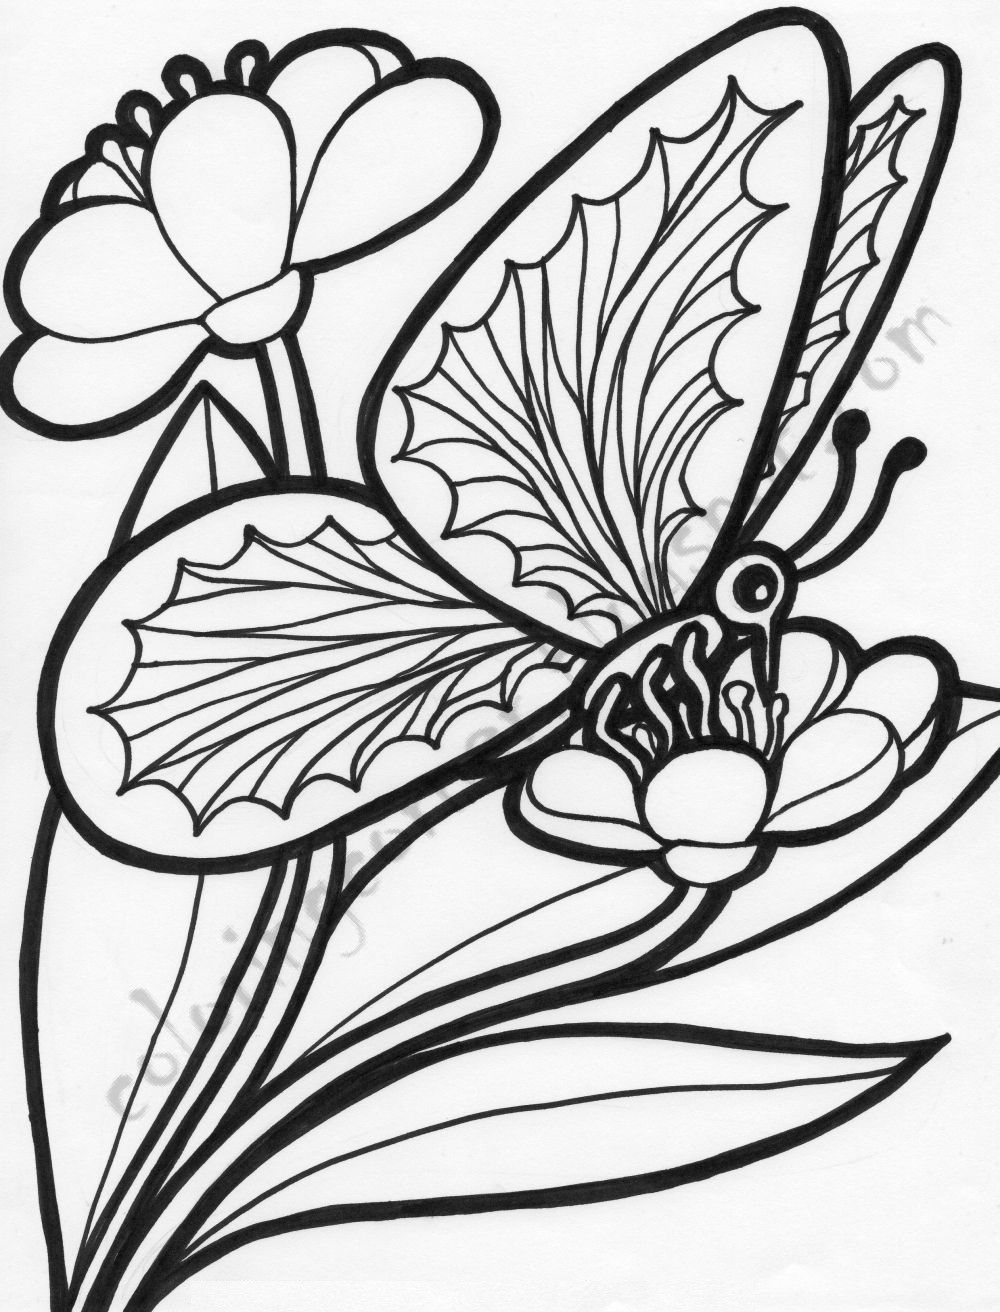 Butterfly Coloring Page For Adults Youngandtae Com Butterfly Coloring Page Printable Flower Coloring Pages Free Coloring Pictures [ 1312 x 1000 Pixel ]